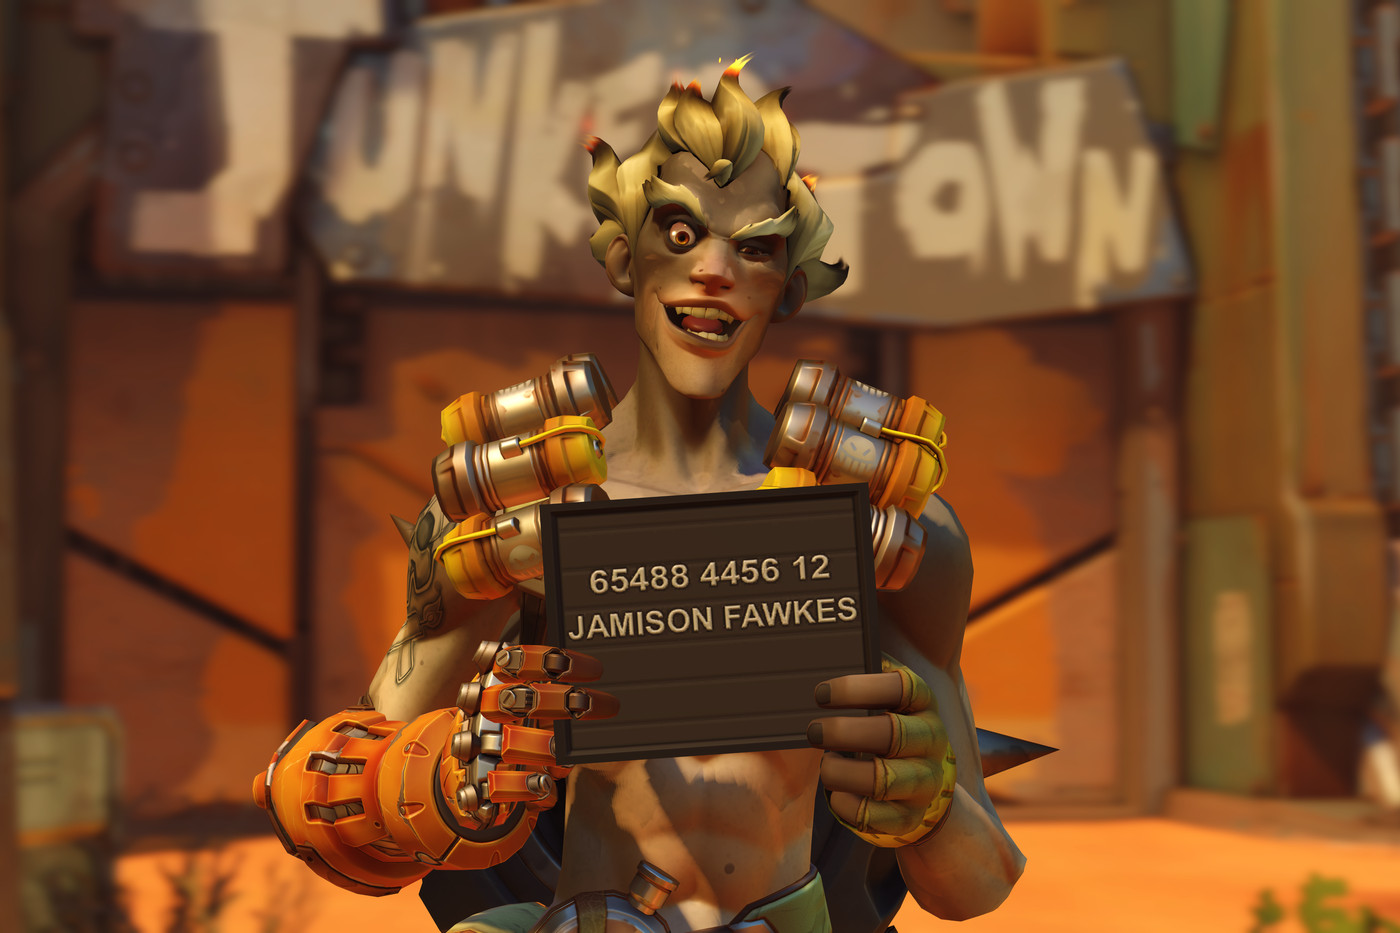 Junkrat Genji And Tracer Get Nerfs Lucio Gets Buffed On The Overwatch Ptr Heroes Never Die Junkrat (ranged assassin) patch note history for heroes of the storm (hots). junkrat genji and tracer get nerfs